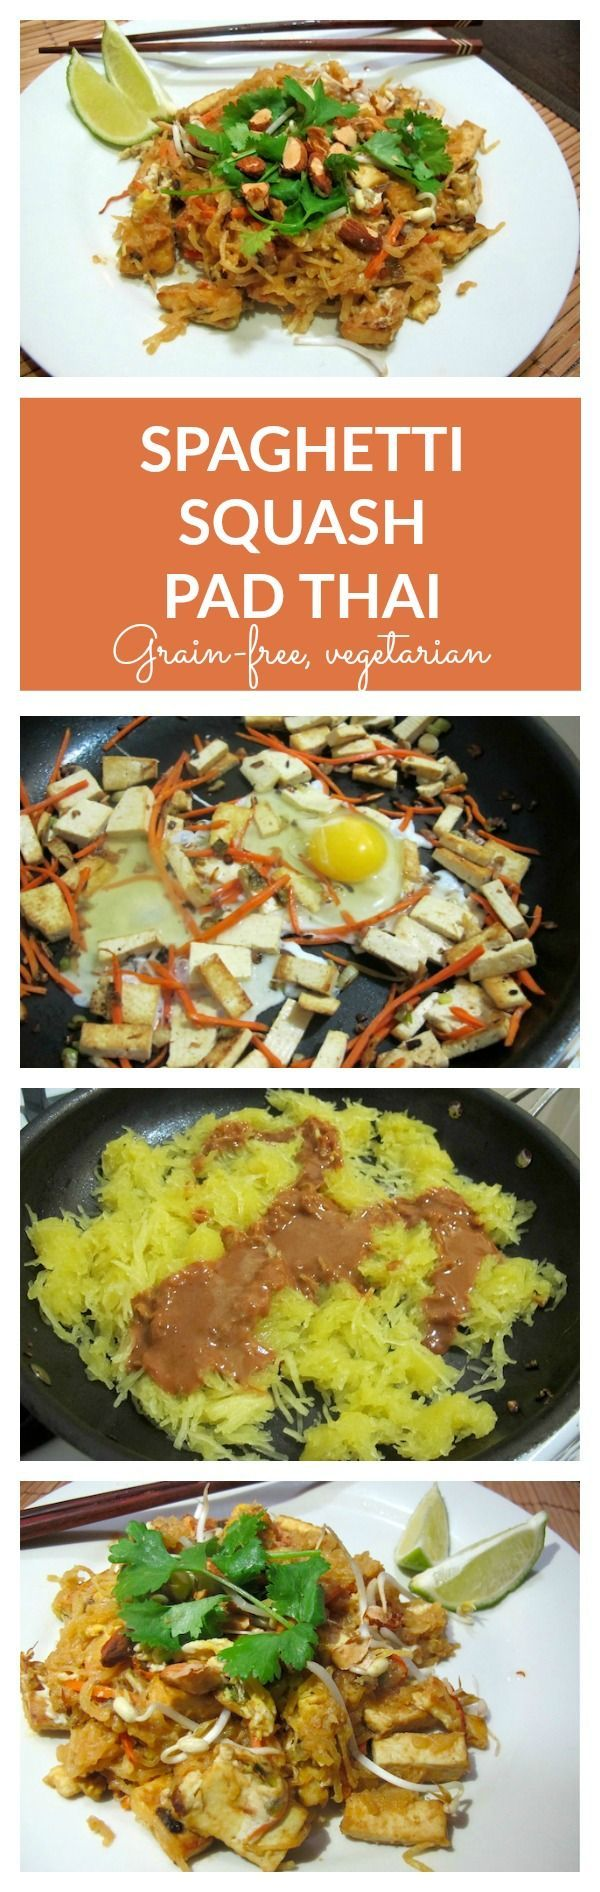 Grain-Free, Vegetarian Spaghetti Squash Pad Thai - a low-carbohydrate, vegetable and protein packed dish. Healthy and delicious!! Can be made gluten free by substituting soy sauce for tamari or aminos.